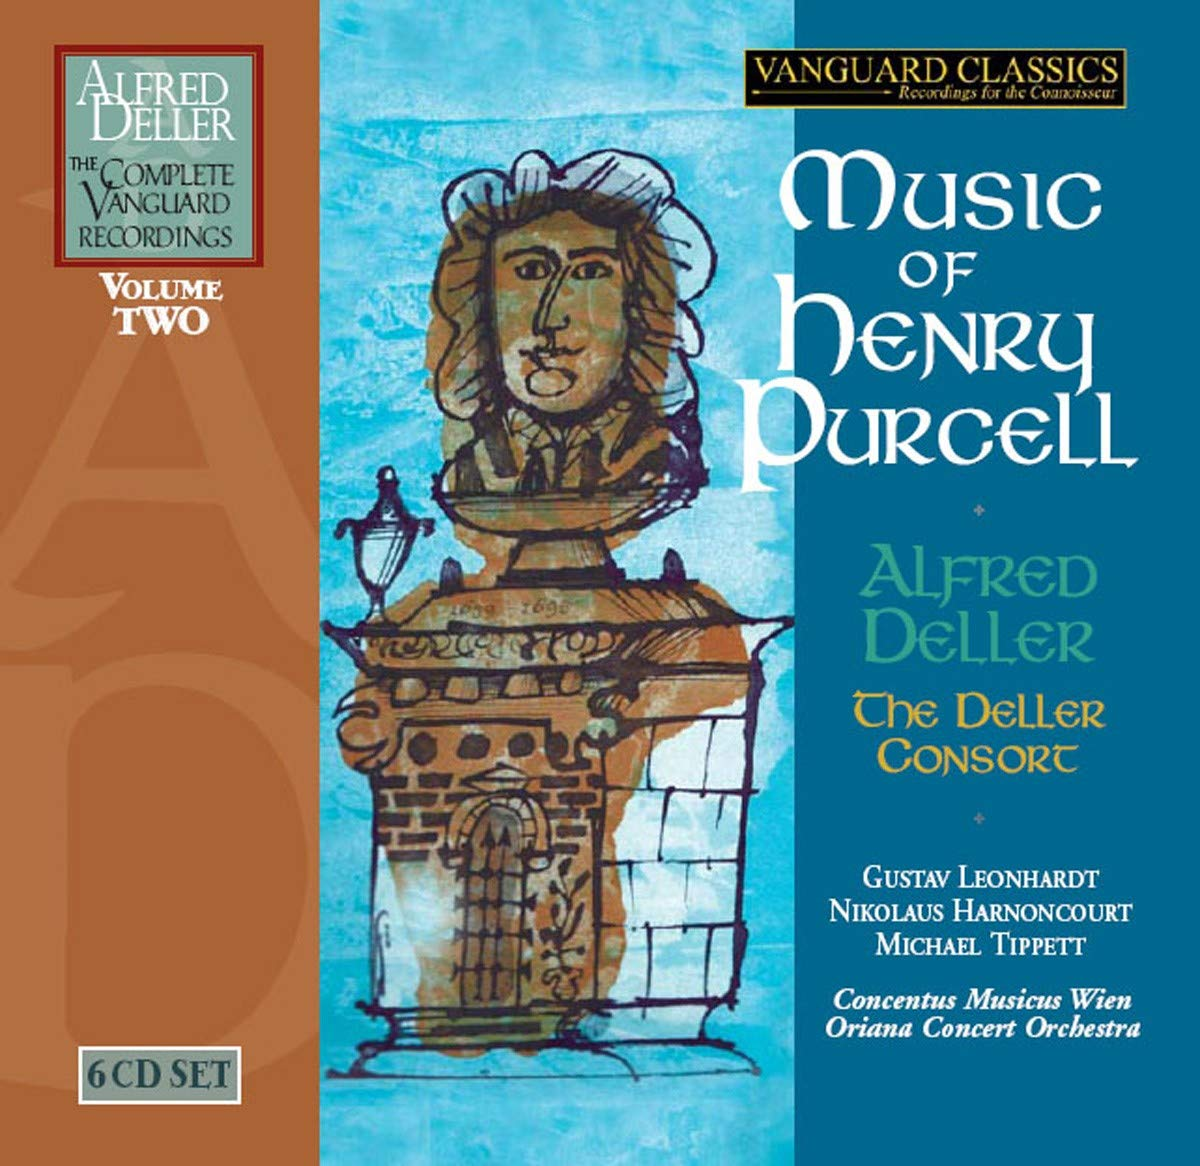 Comp 5% OFF Vanguard Recordings 2: Henry Purcell Fresno Mall Music of